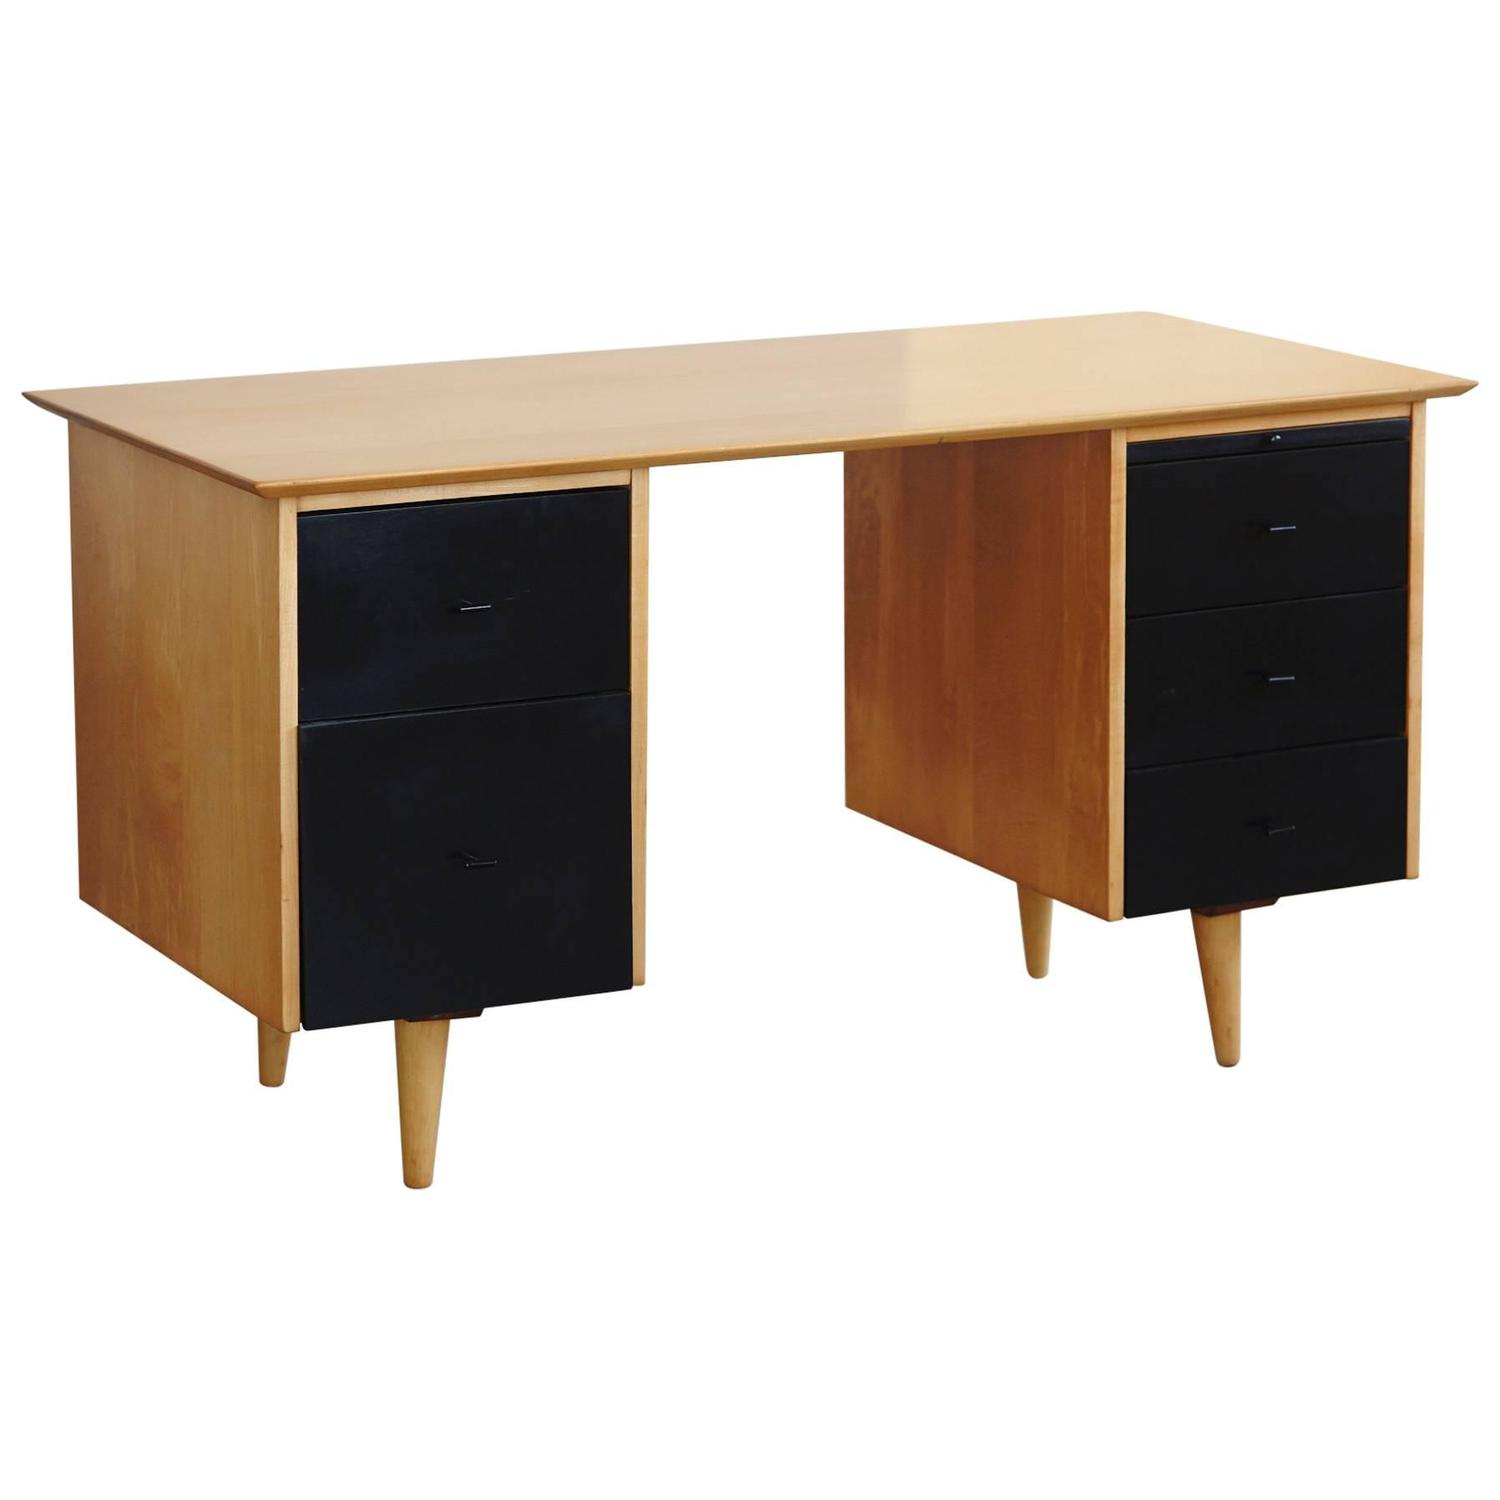 5 Drawer Double Sided Two Tone Black Birch Desk by Paul